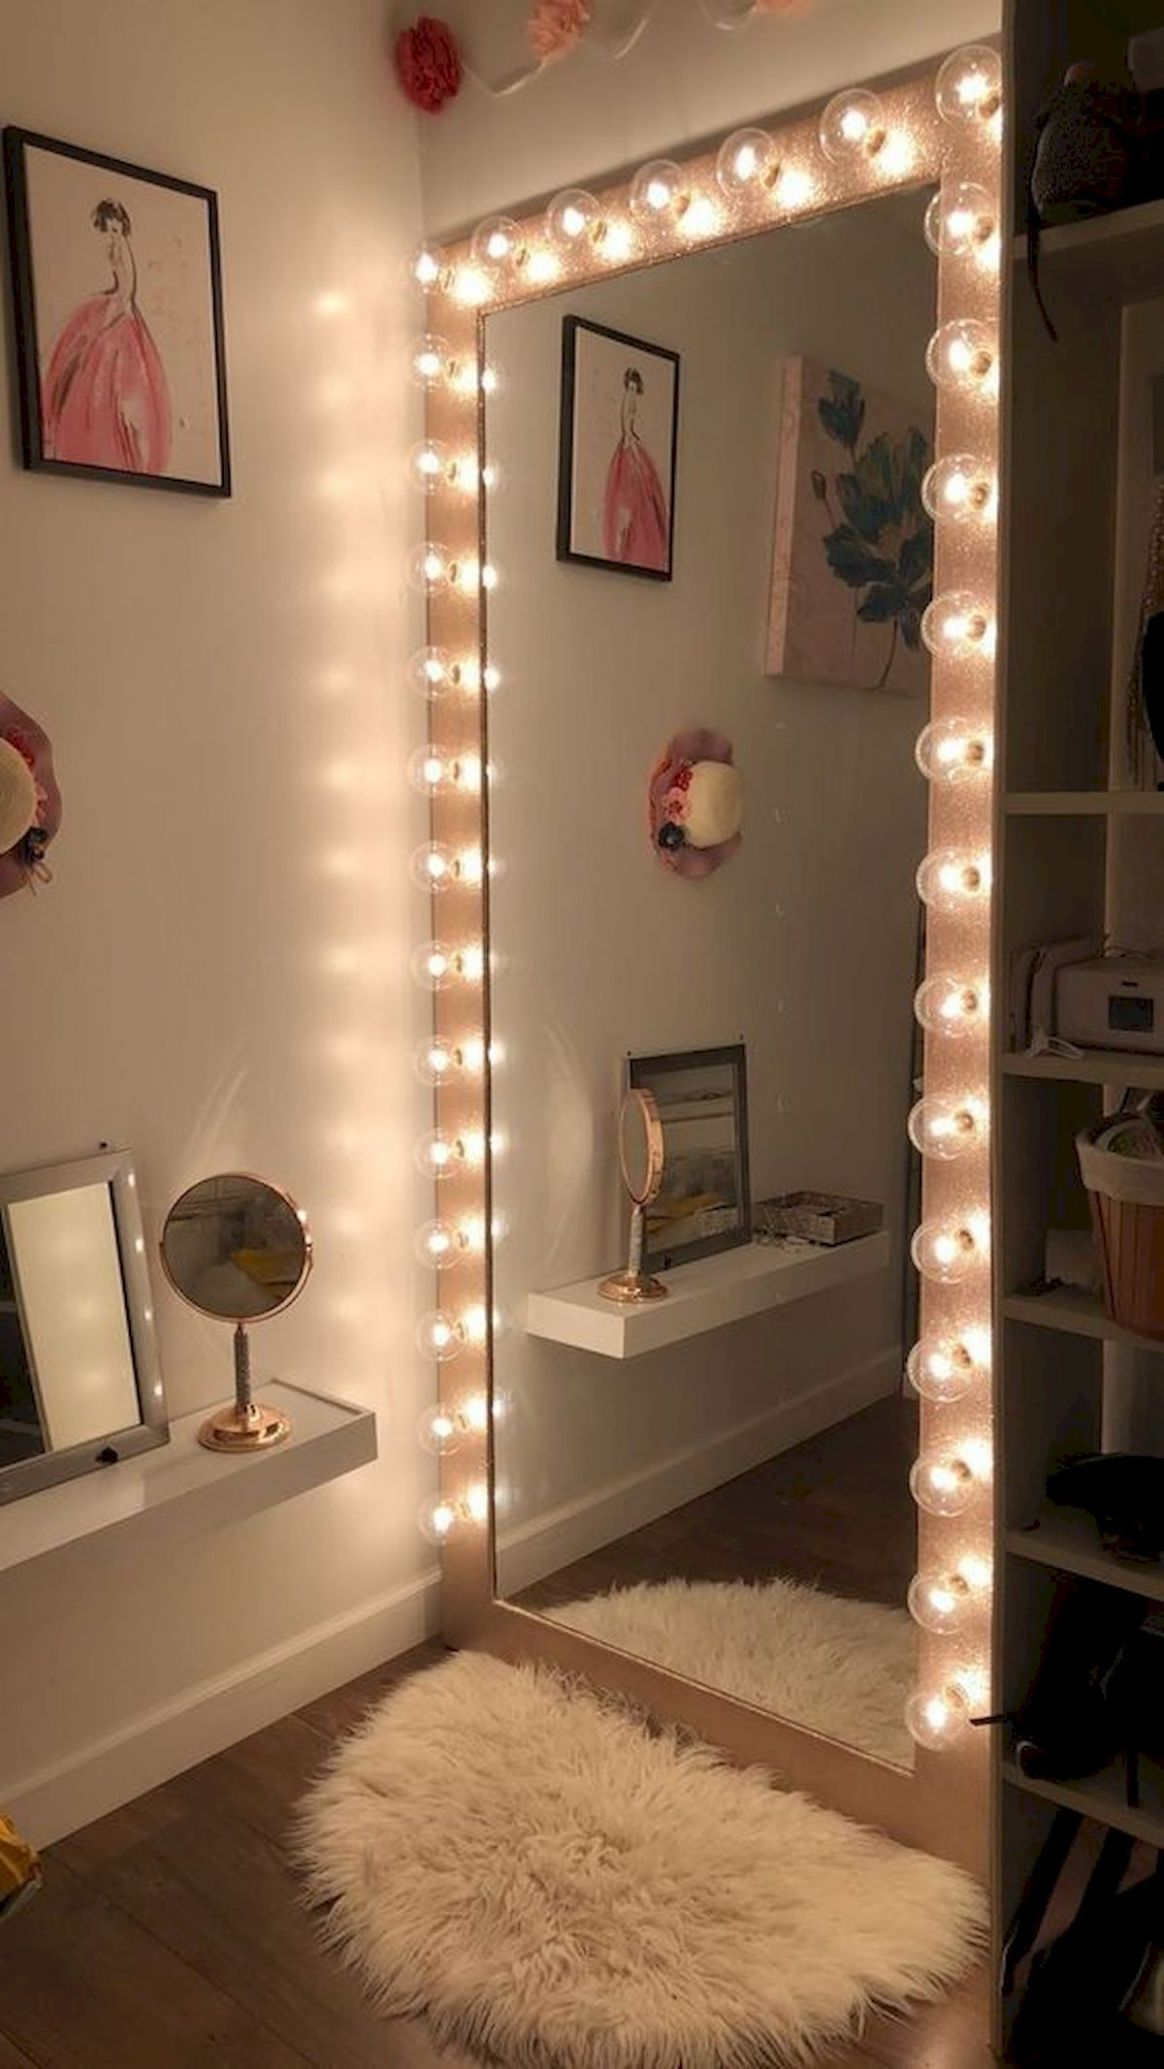 Pin by Vaeh K on design and art | Dorm room inspiration, Pinterest ..